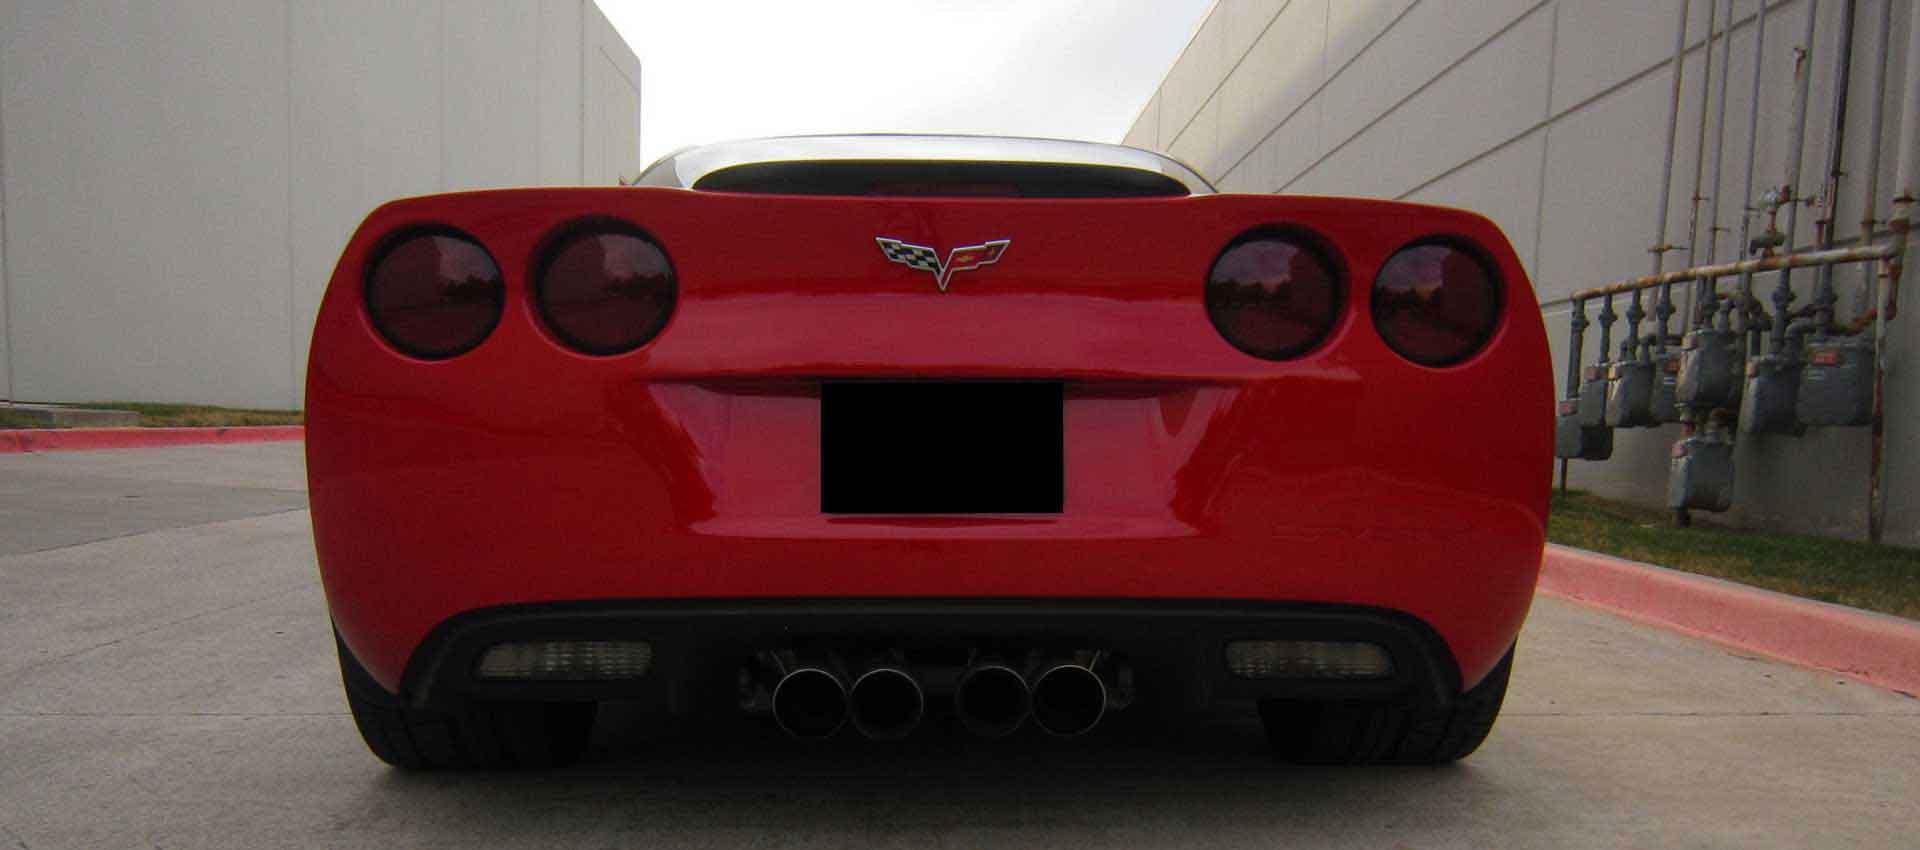 Smoked Taillight Kit - Corvette Z06